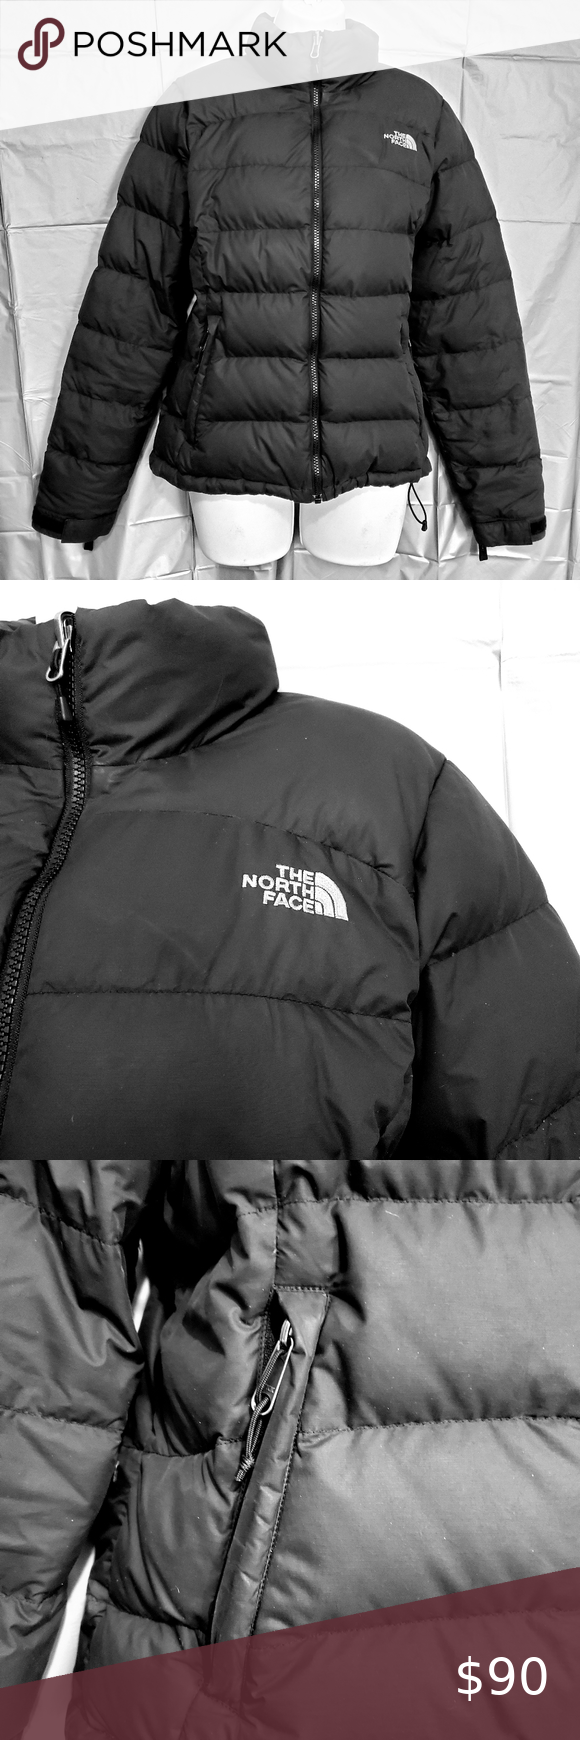 The North Face 700 Black Puffer Down Jacket Coat M Black Puffer The North Face North Face 700 [ 1740 x 580 Pixel ]